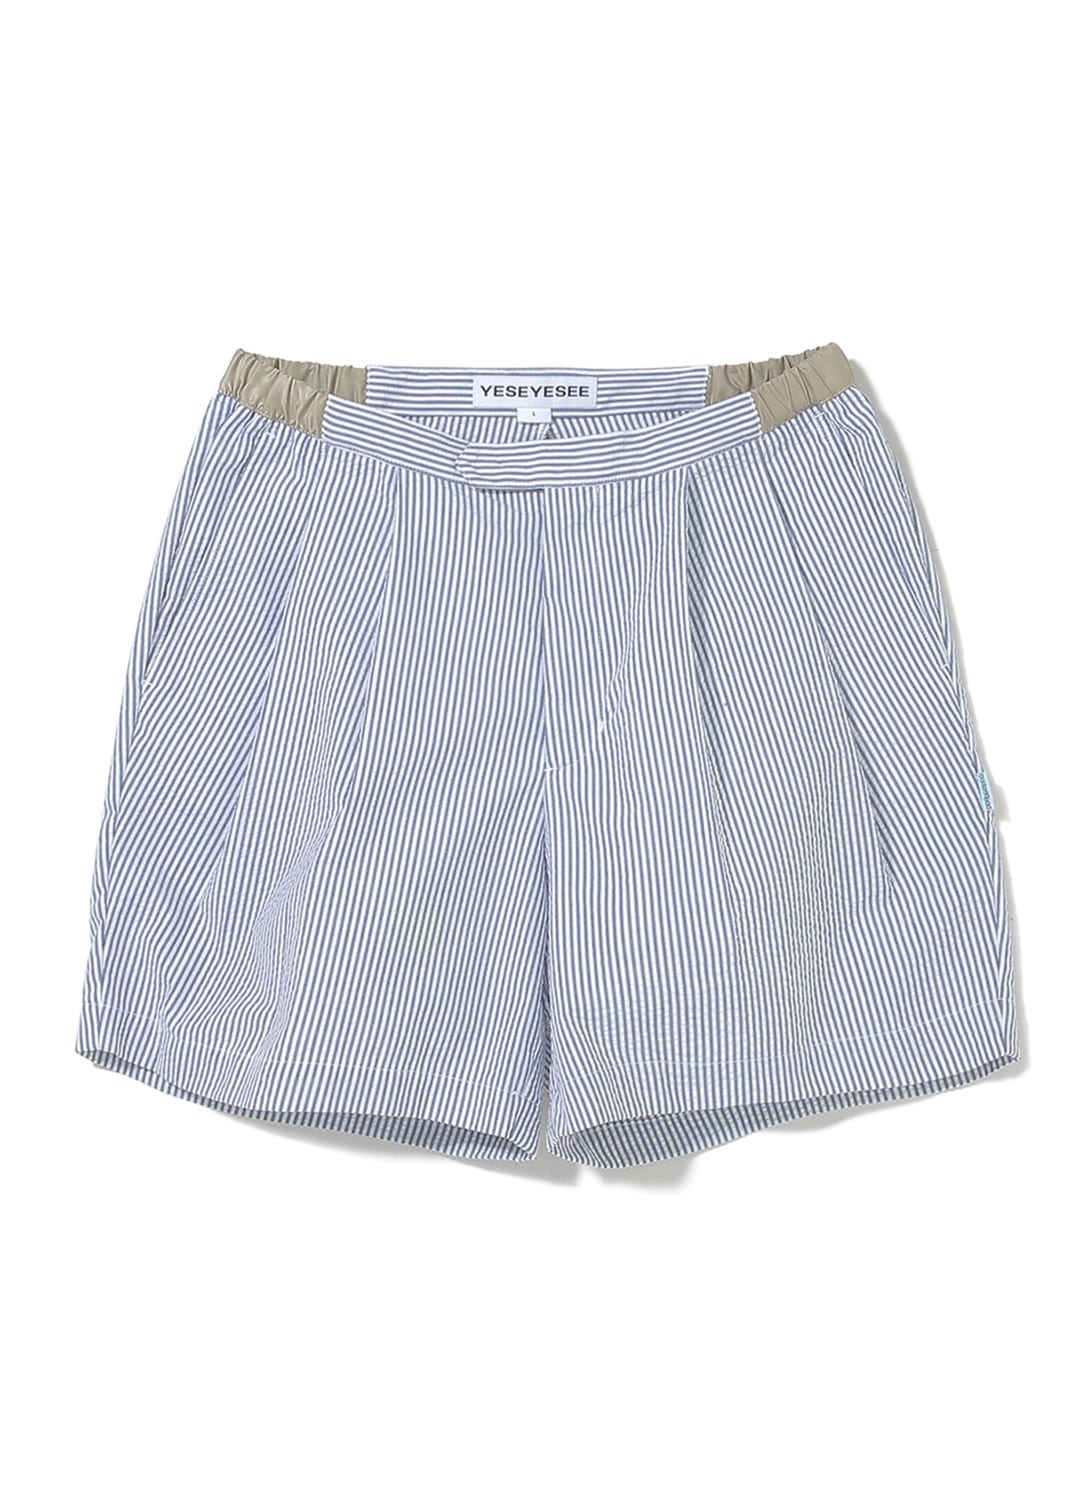 Seersucker Shorts Stripe